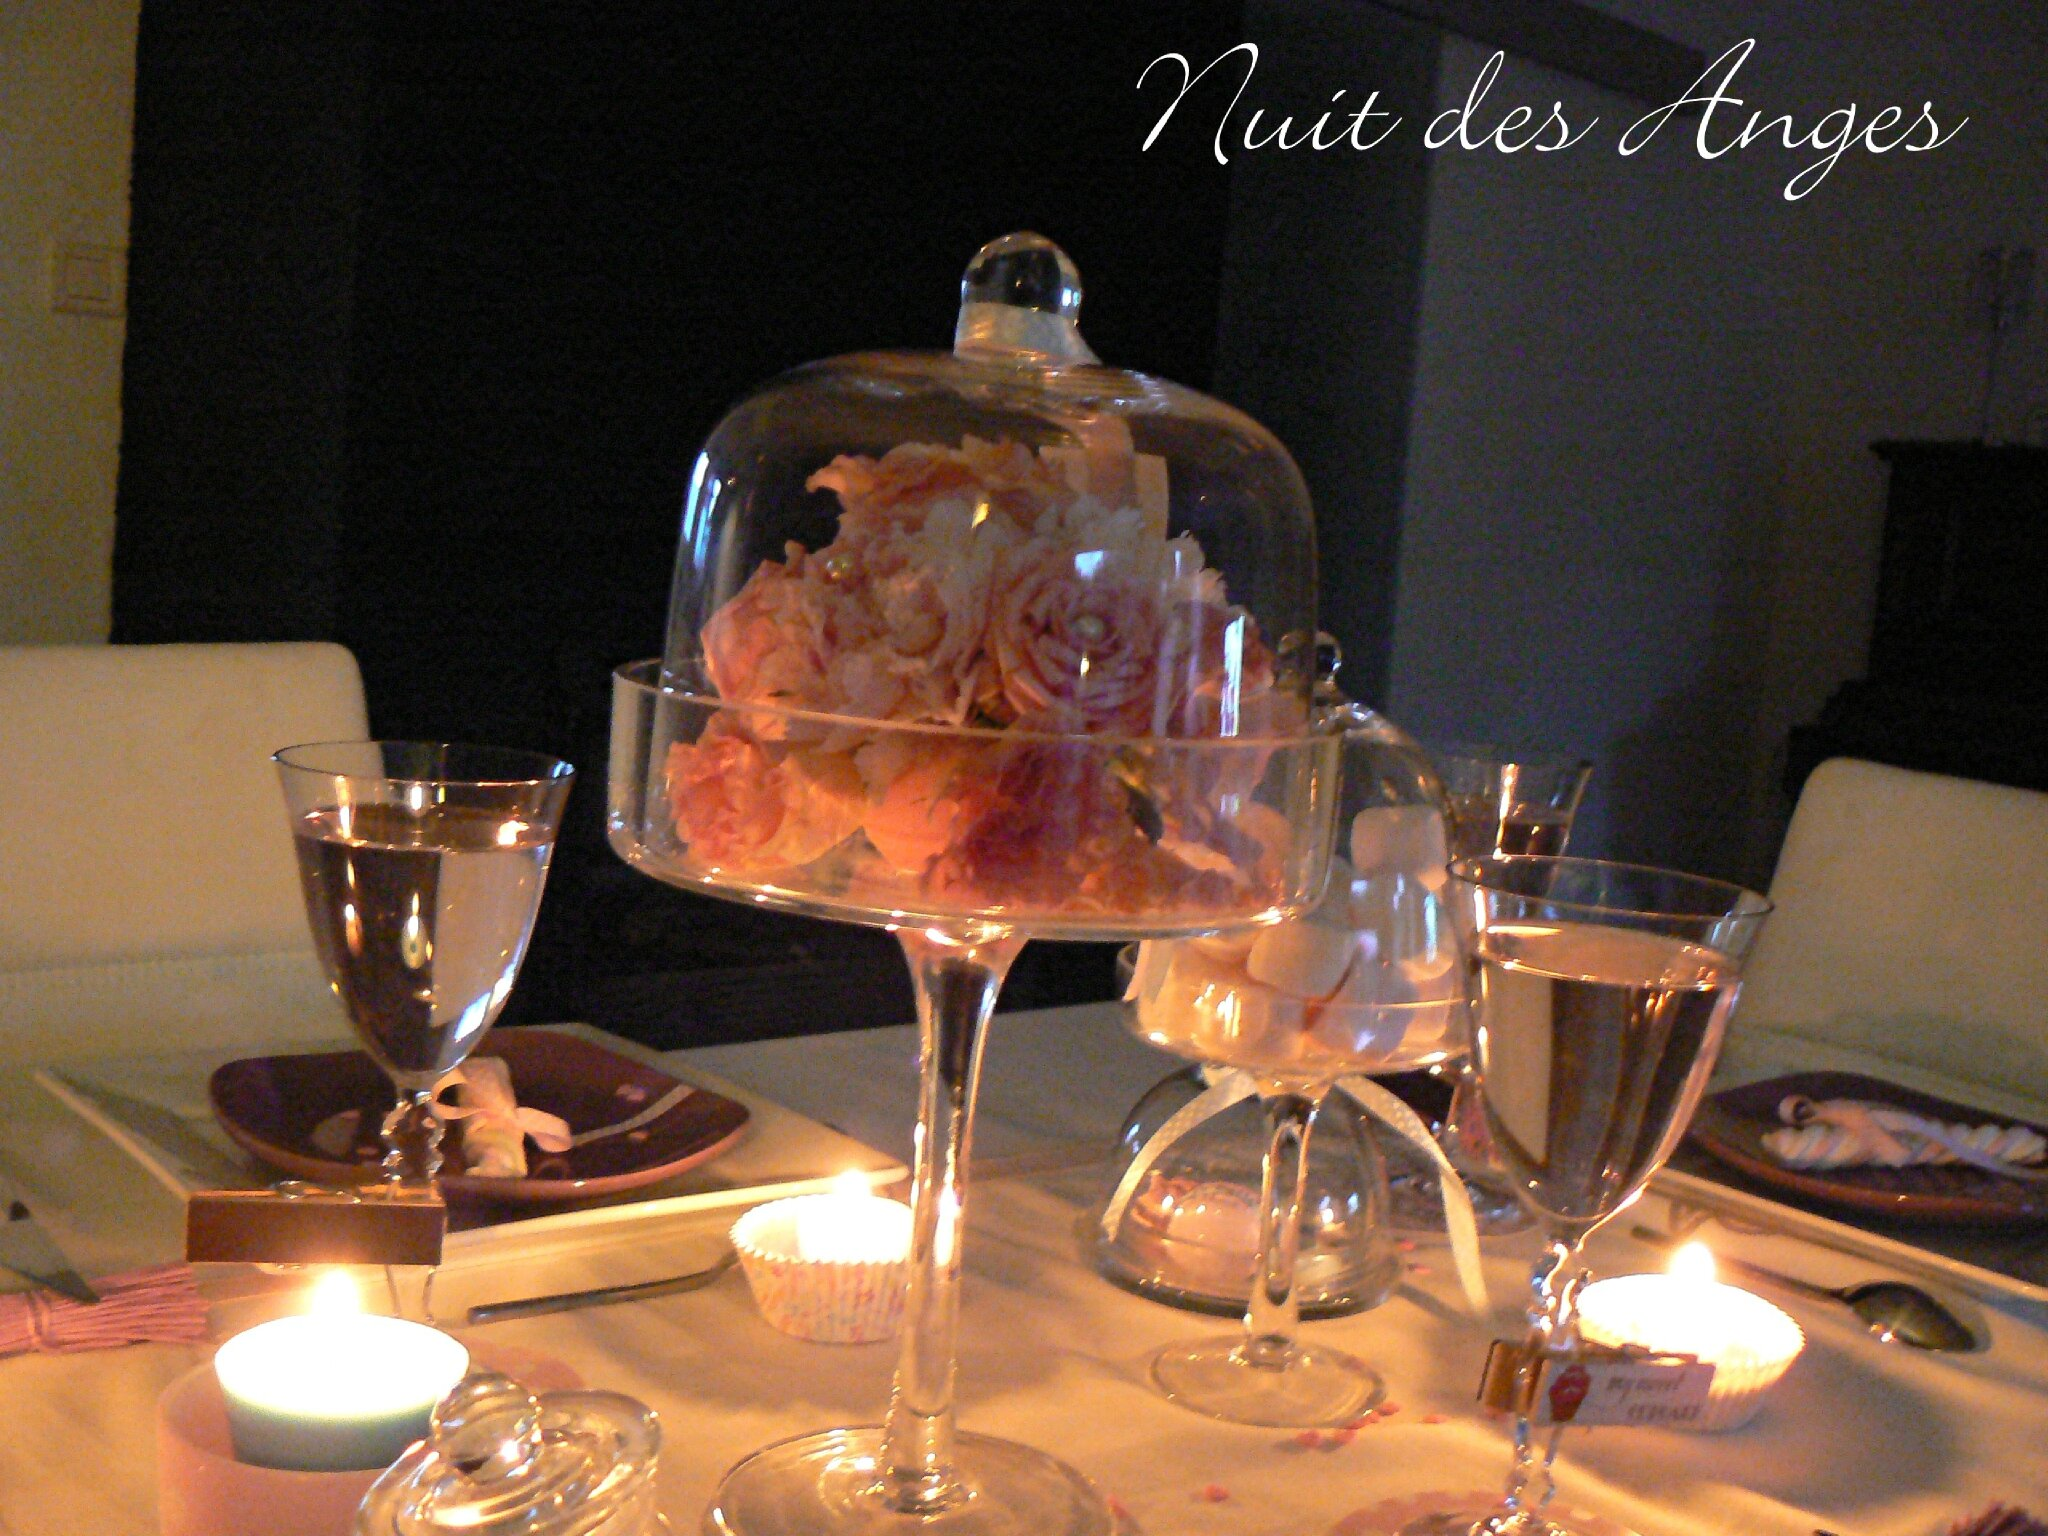 D coration de table gourmandise nuit des anges for Decoration table gourmandise